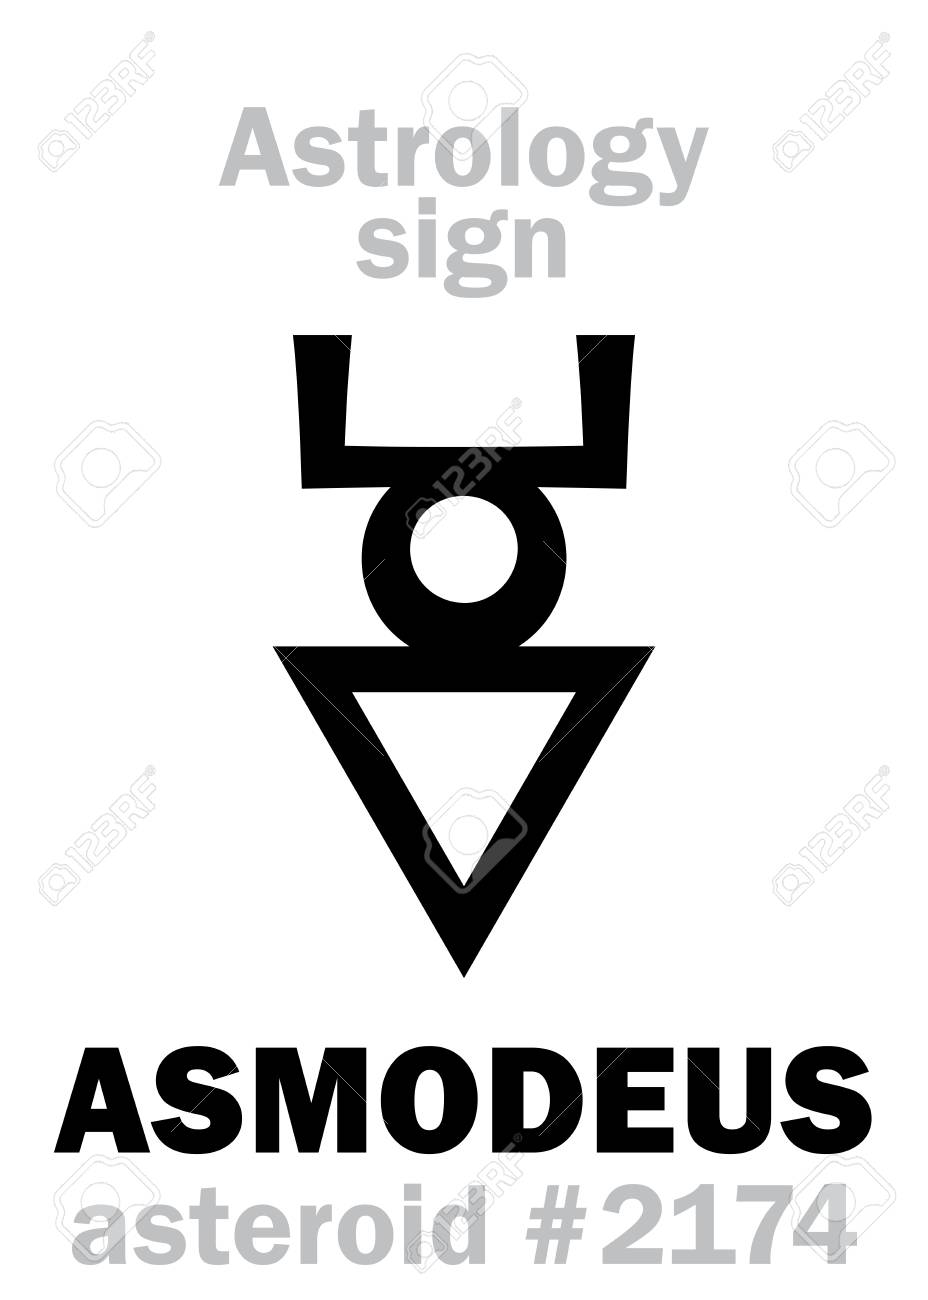 Astrology alphabet asmodeus hashmedai asteroid 2174 astrology alphabet asmodeus hashmedai asteroid 2174 hieroglyphics royalty free cliparts vectors and stock illustration image 85174355 biocorpaavc Choice Image